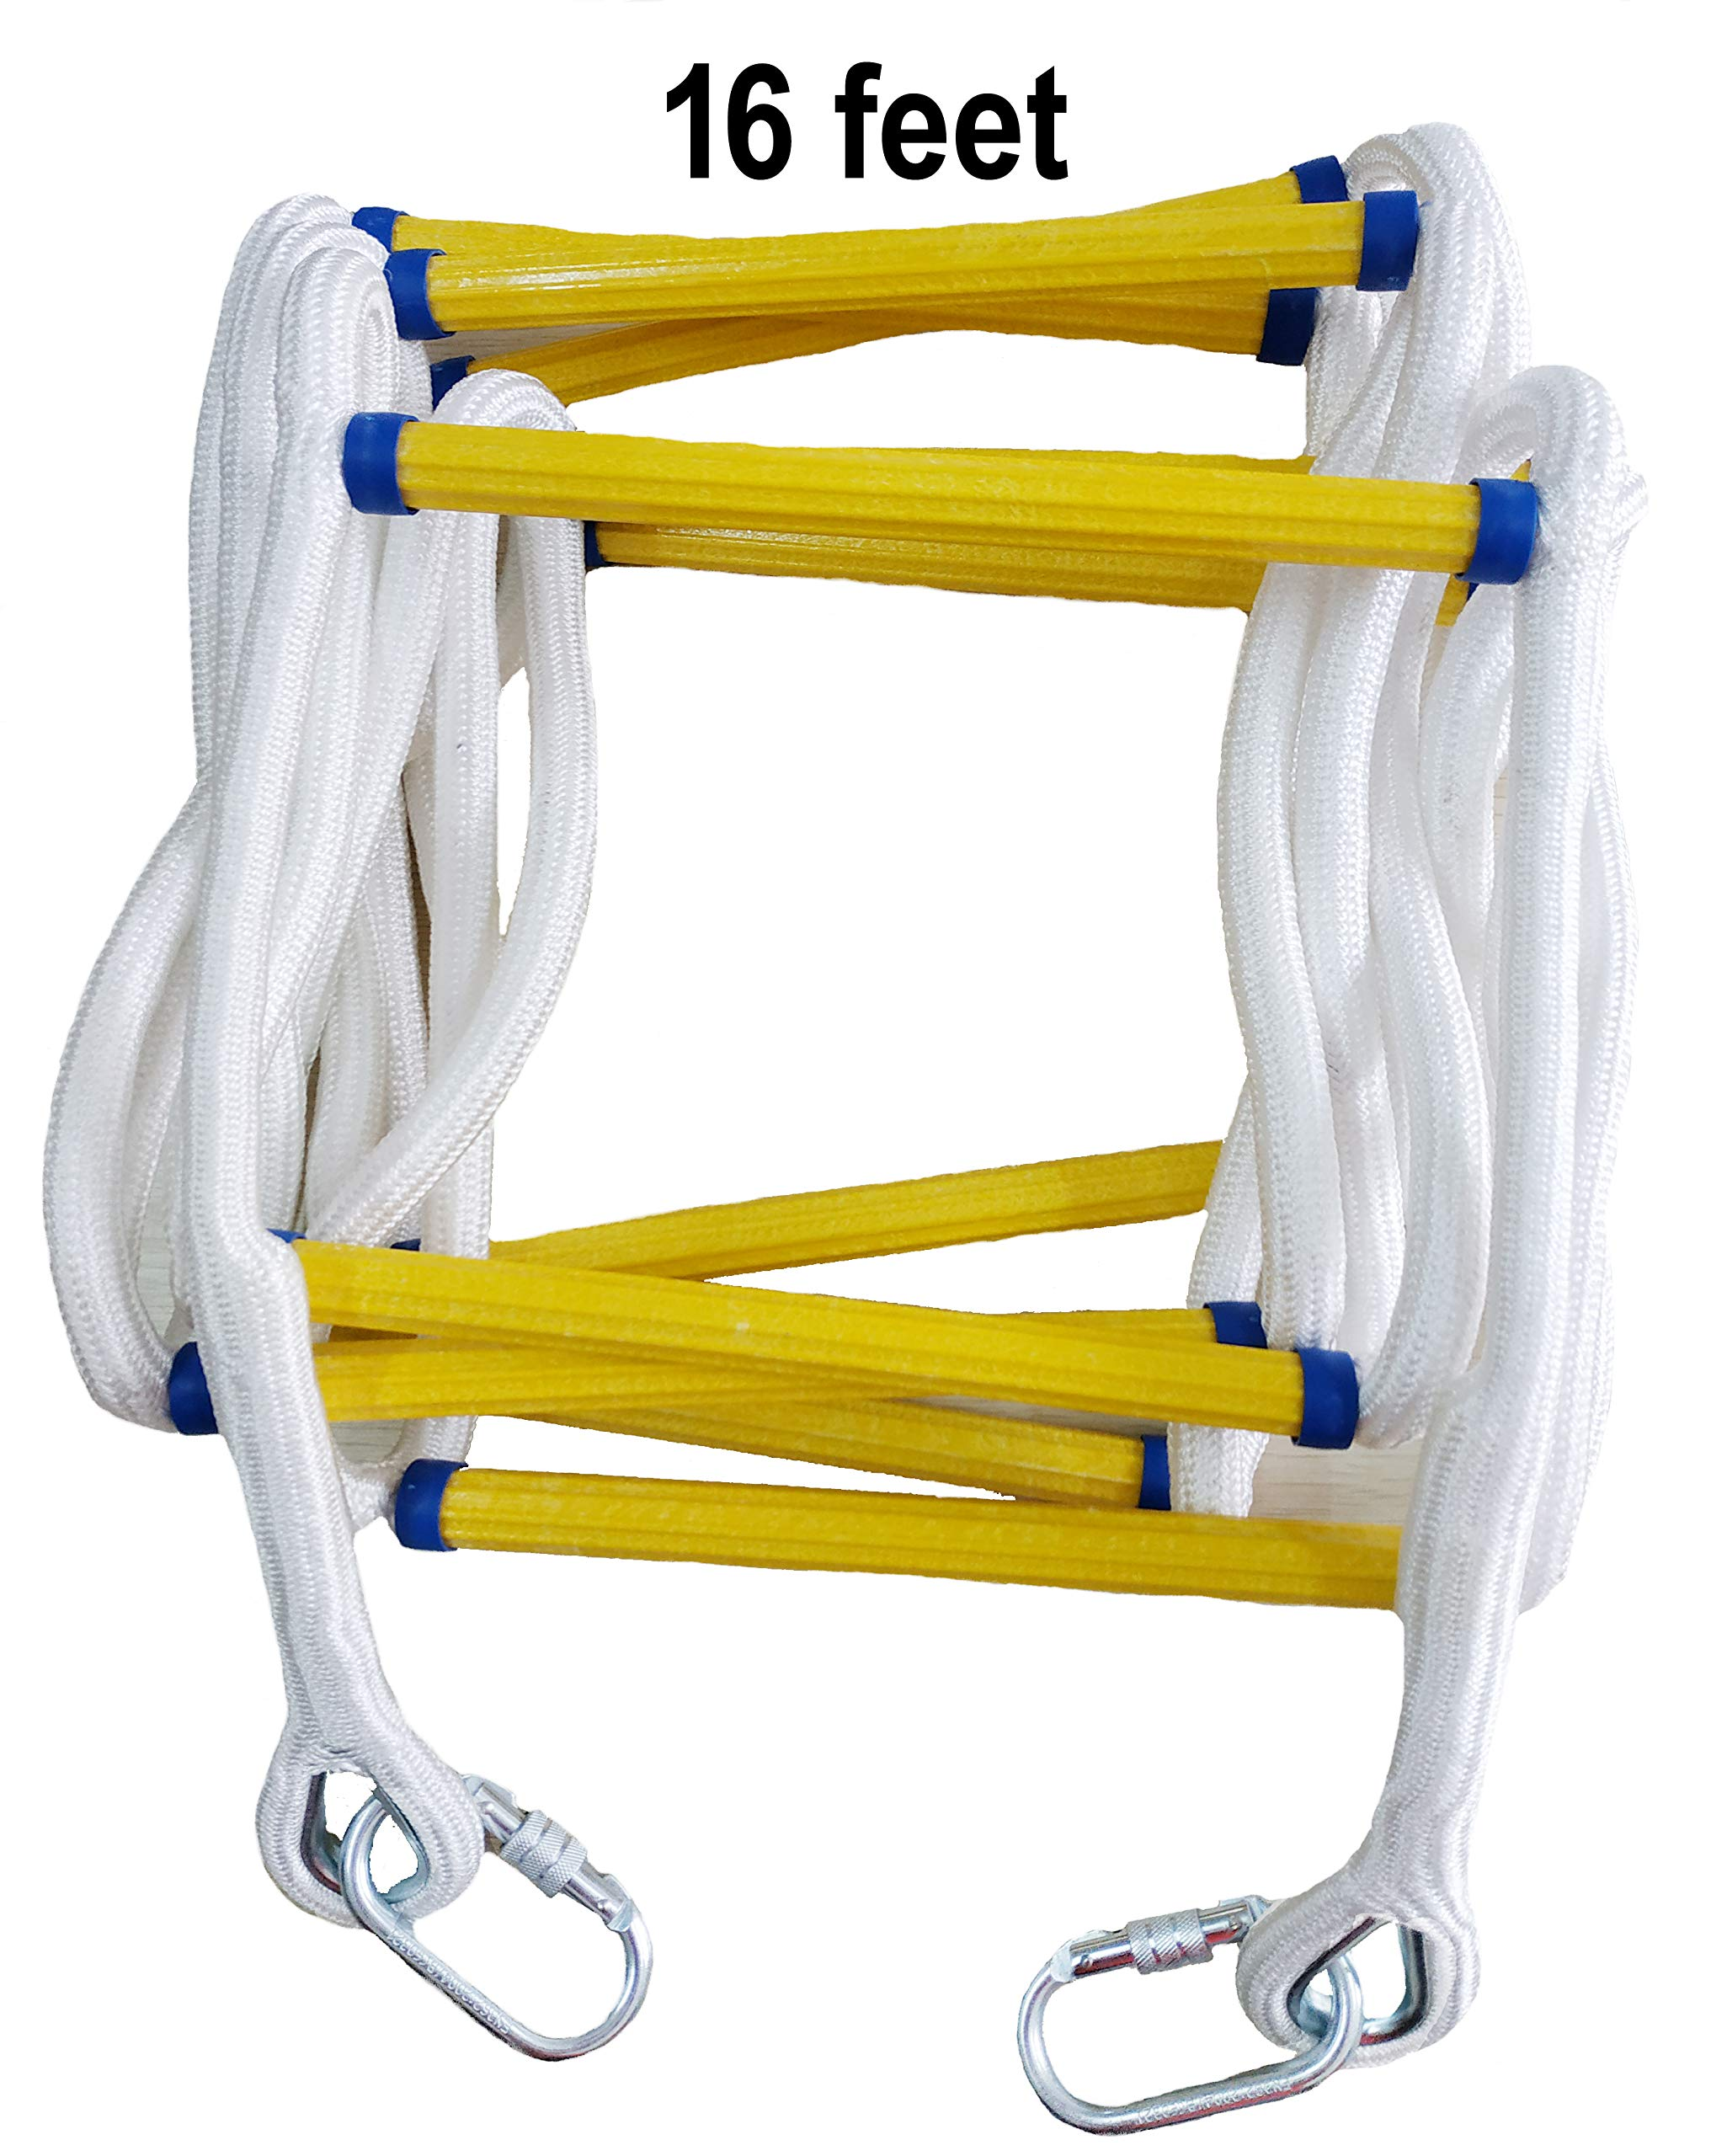 Emergency Fire Escape Rope Ladder 2 Story - 16 feet Solid Flame Resistant Fire Safety Rope Ladder with Carabins - Fast to Deploy & Easy to Use - Compact & Easy to Store -Reusable